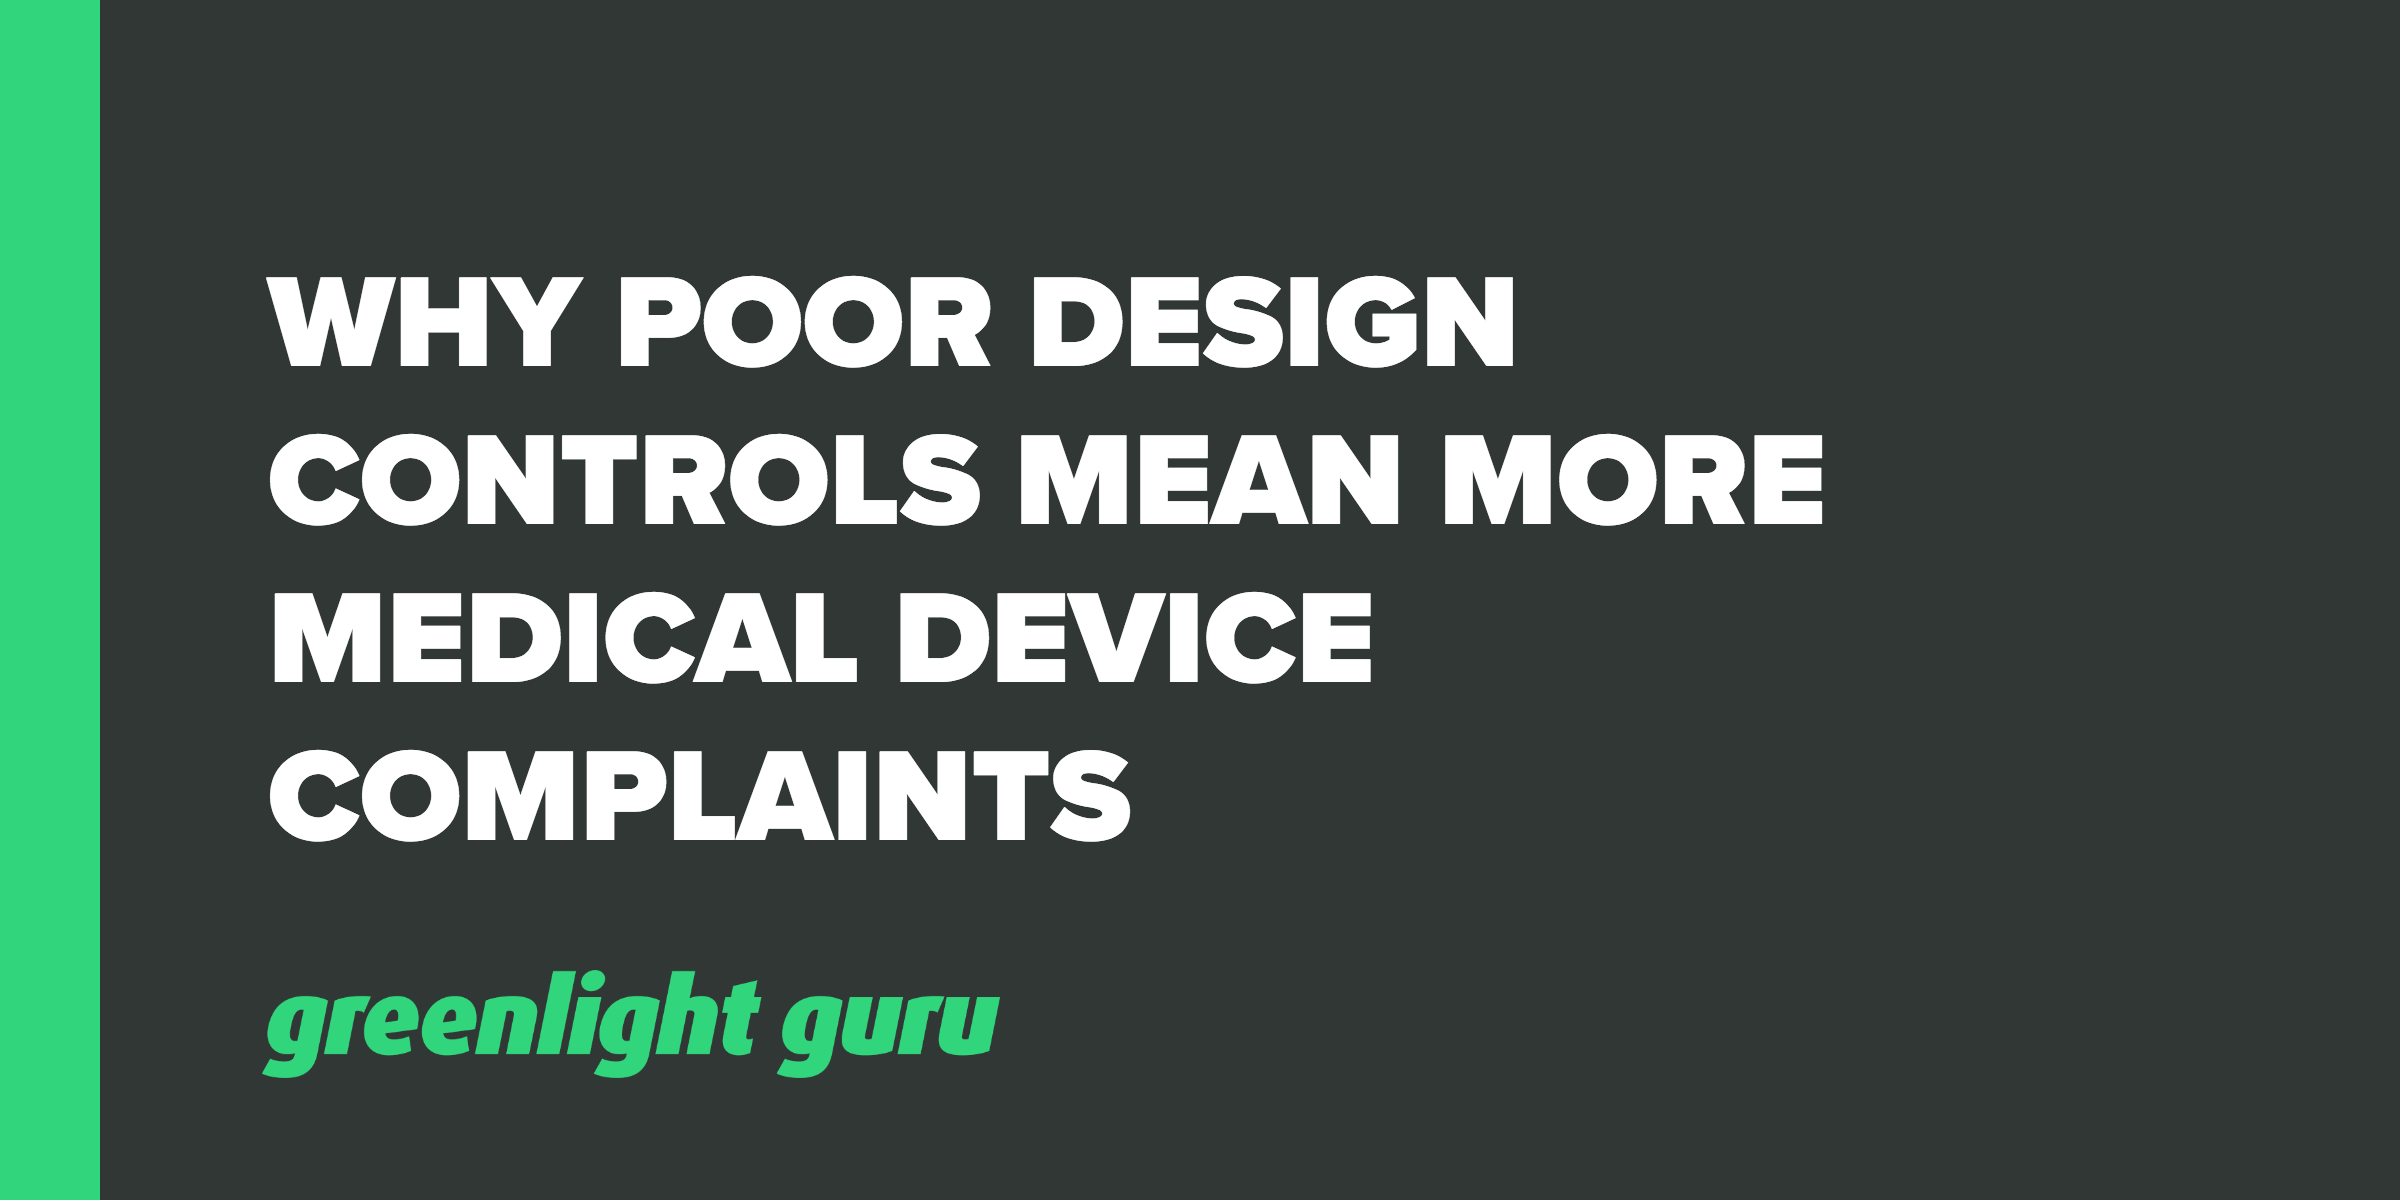 Why Poor Design Controls Mean More Medical Device Complaints - Featured Image